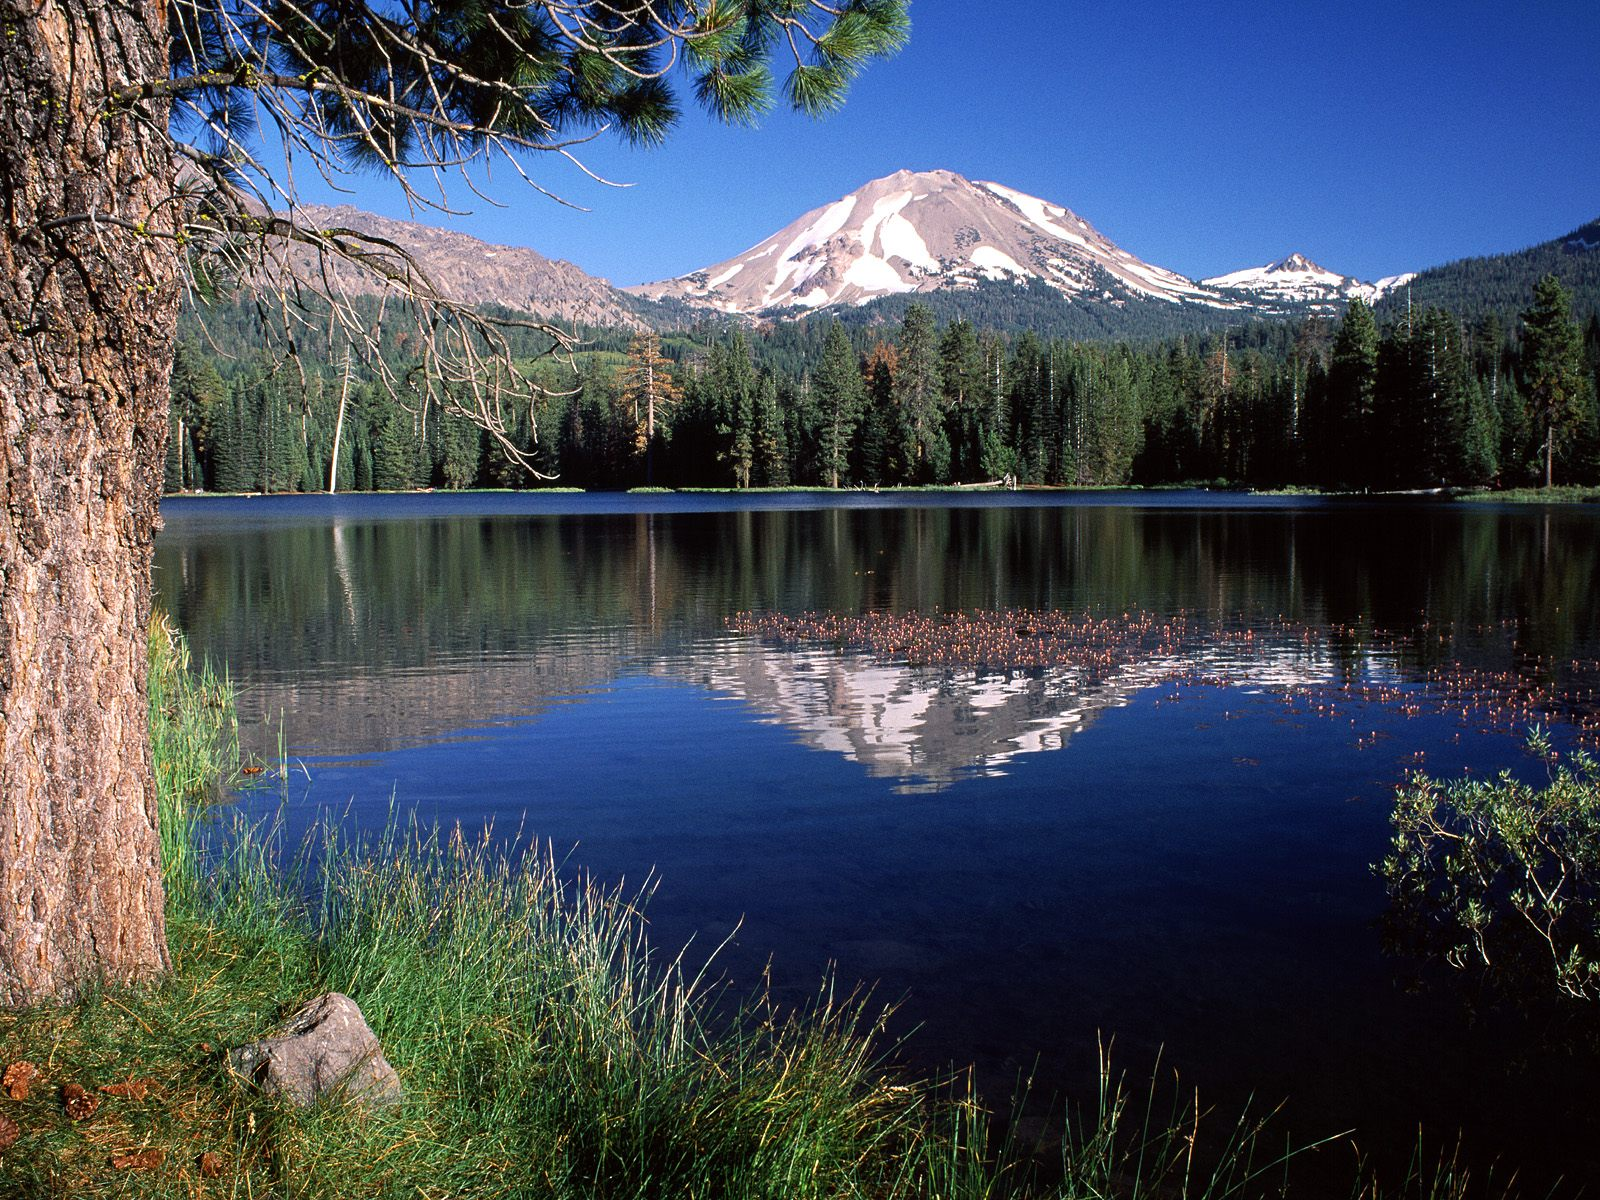 Lassen Peak, California 1600 x 1200